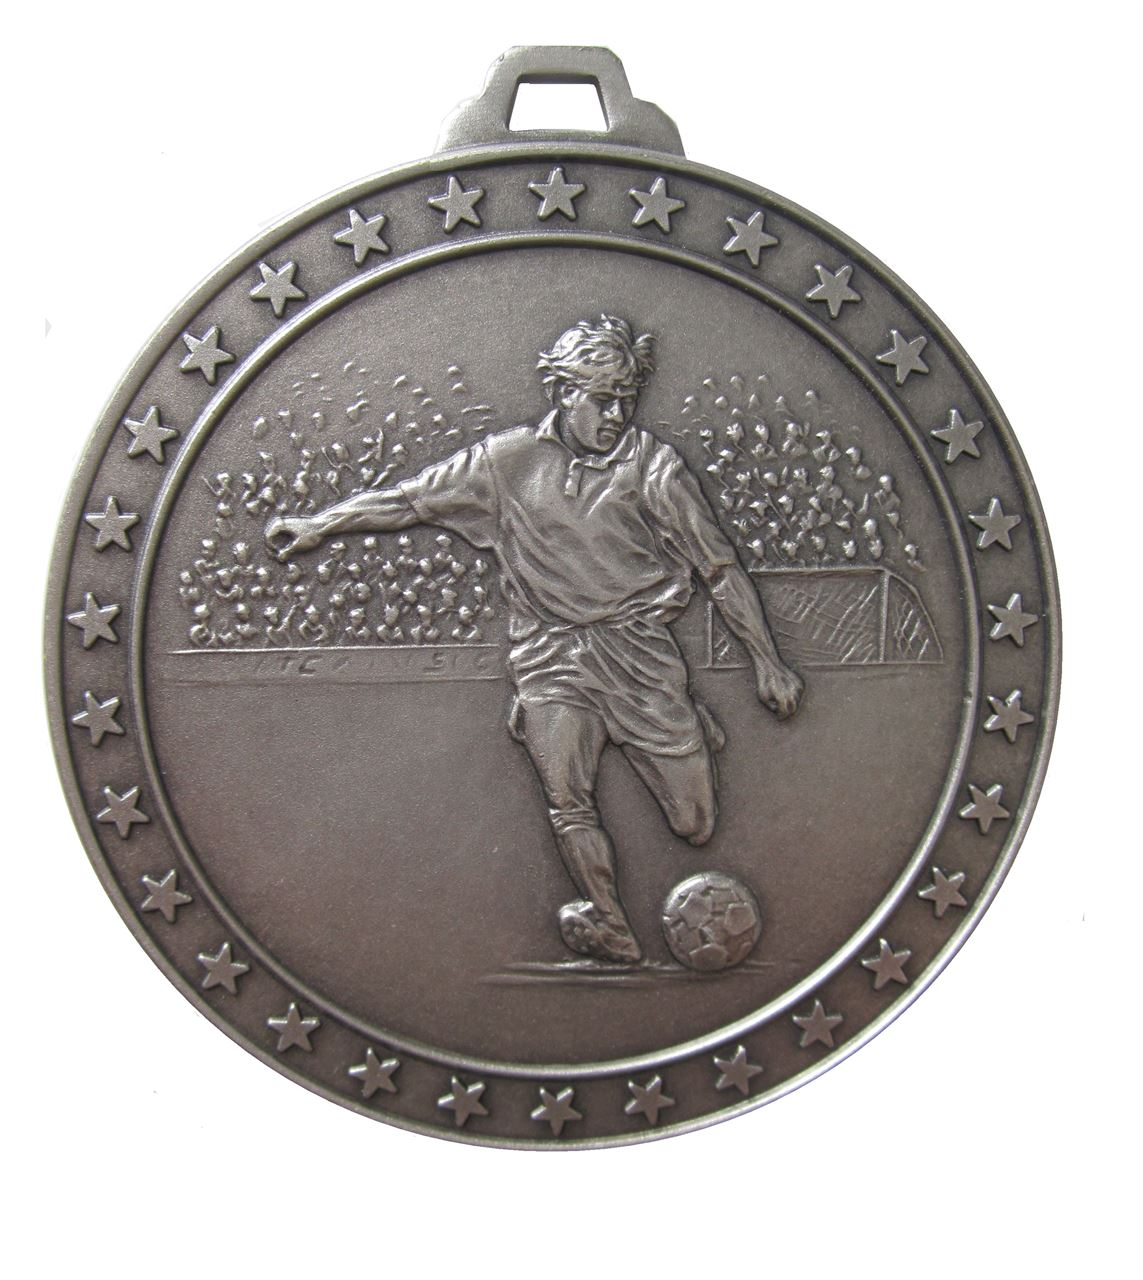 Silver Economy Football Star Medal (size: 60mm) - 434E